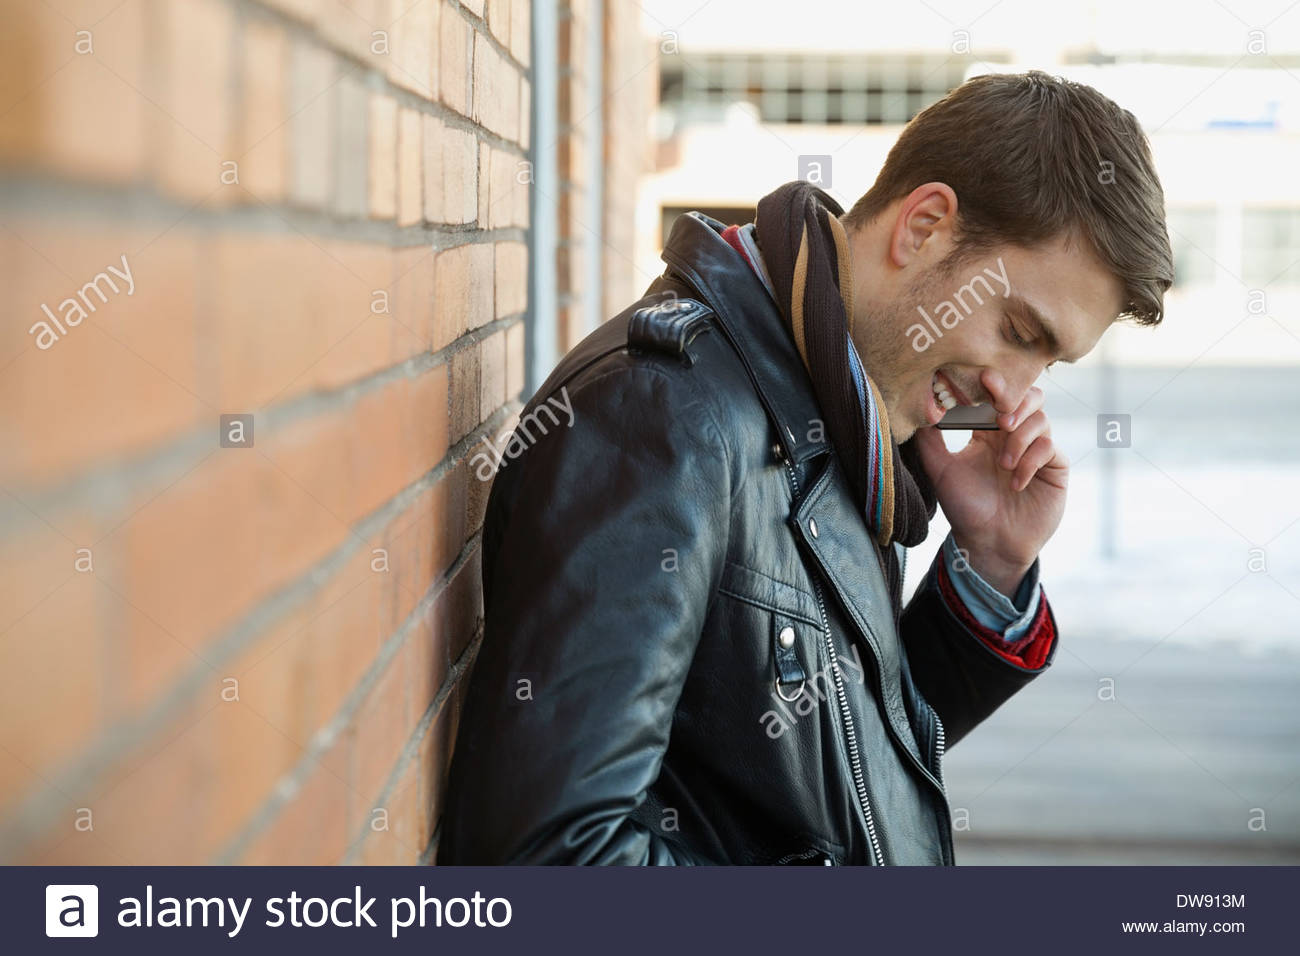 Smiling man answering smart phone outdoors Photo Stock